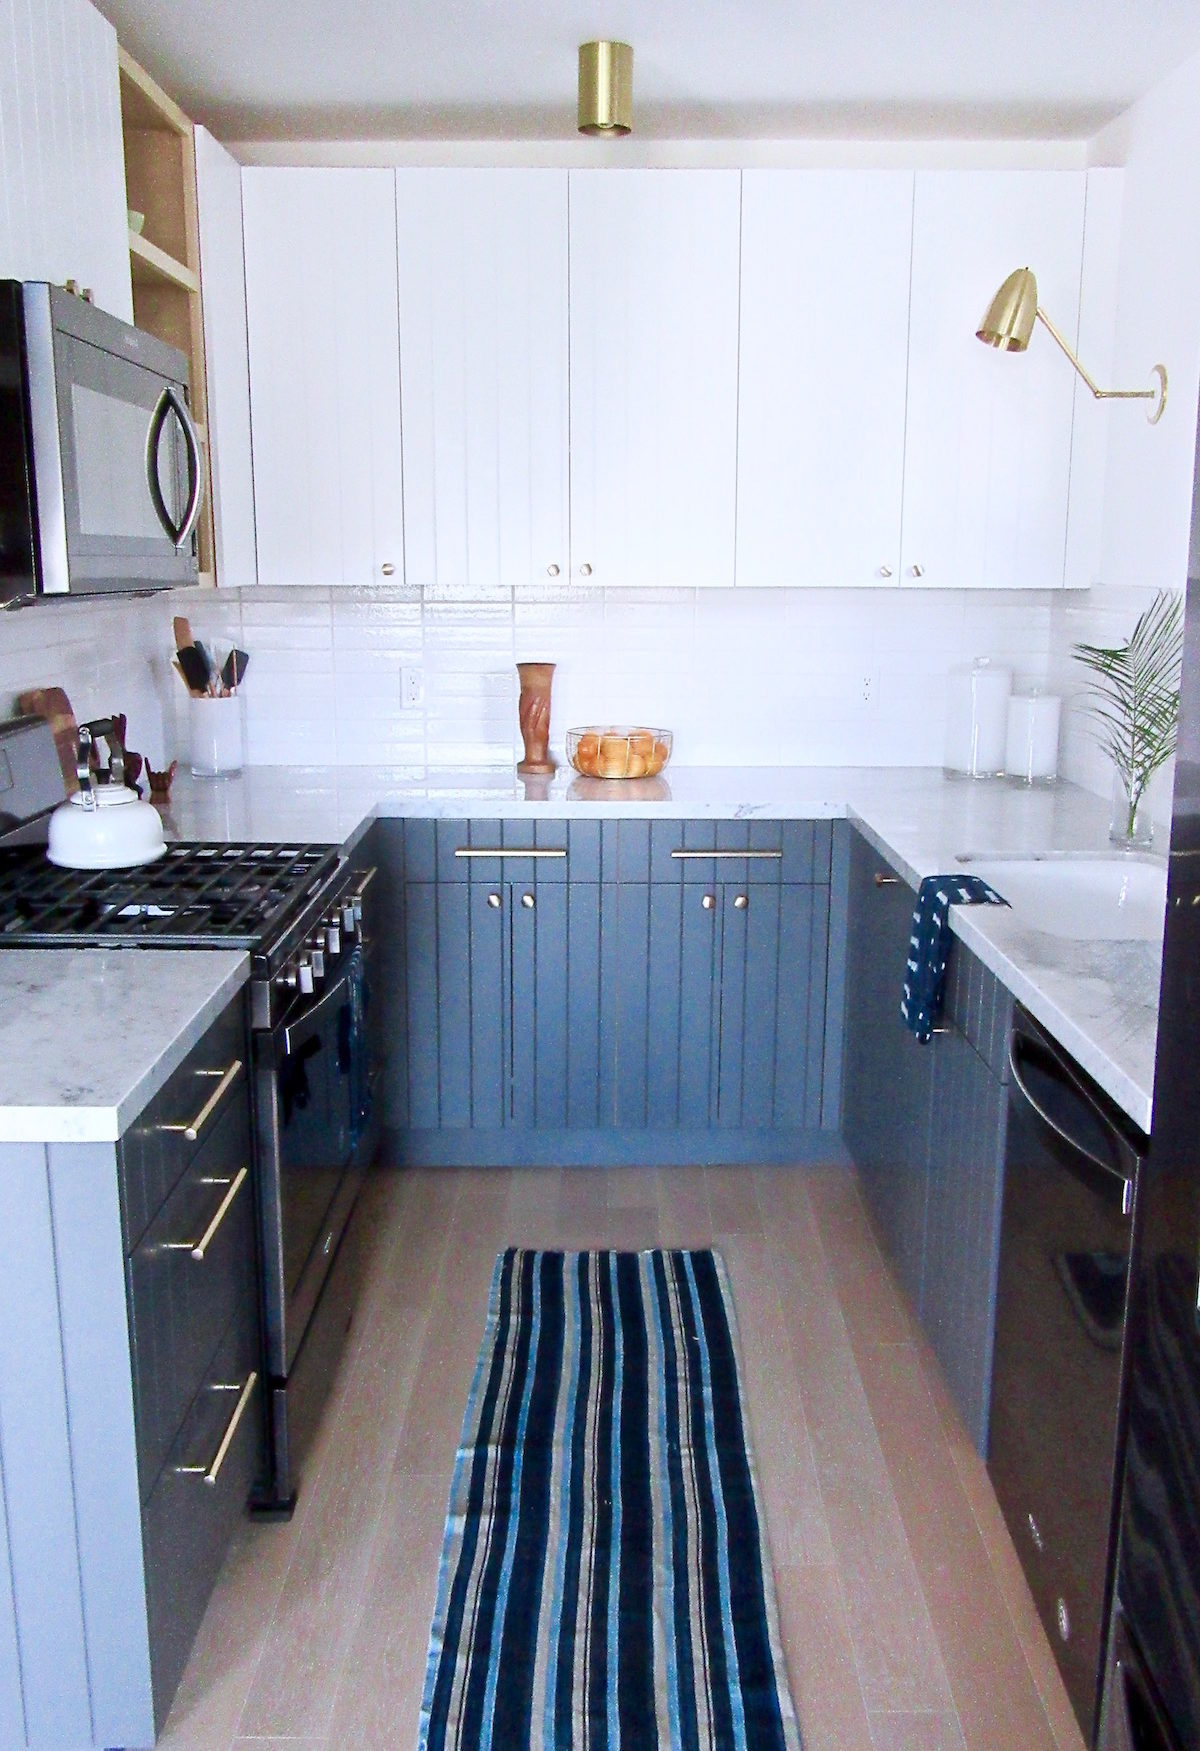 Silver Lake Small Kitchen Remodel - Black Appliance Trend | COCOCOZY